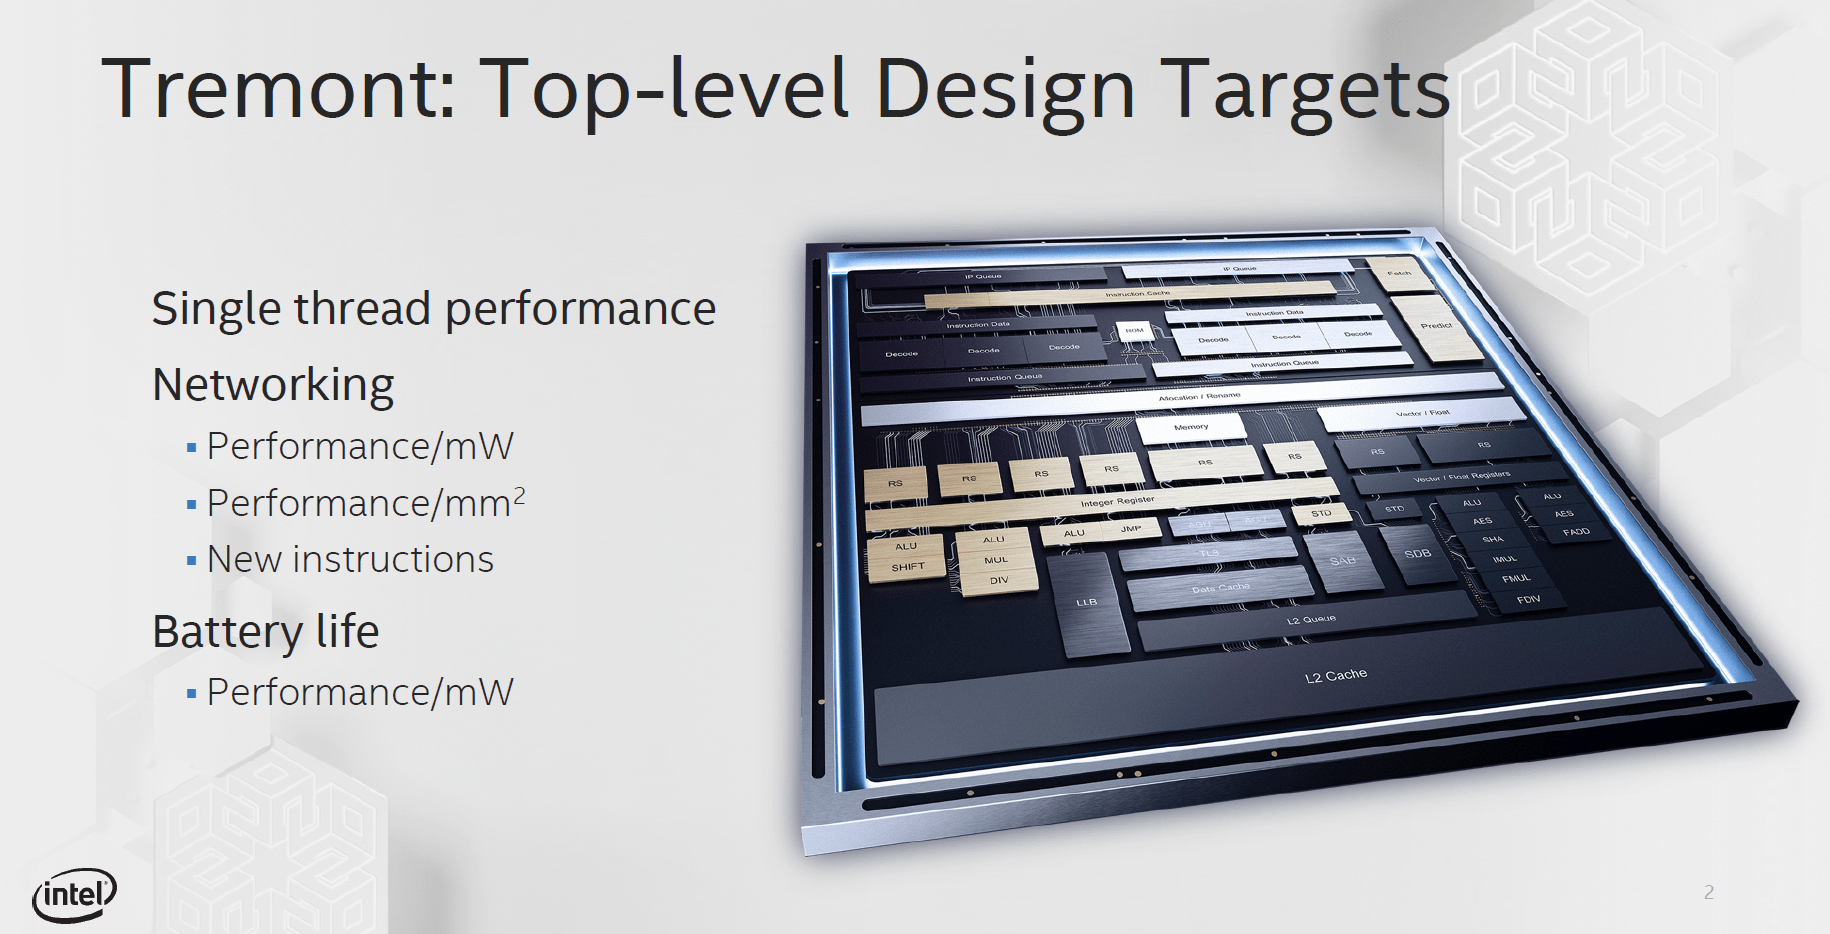 Intel Tremont Top Level Design